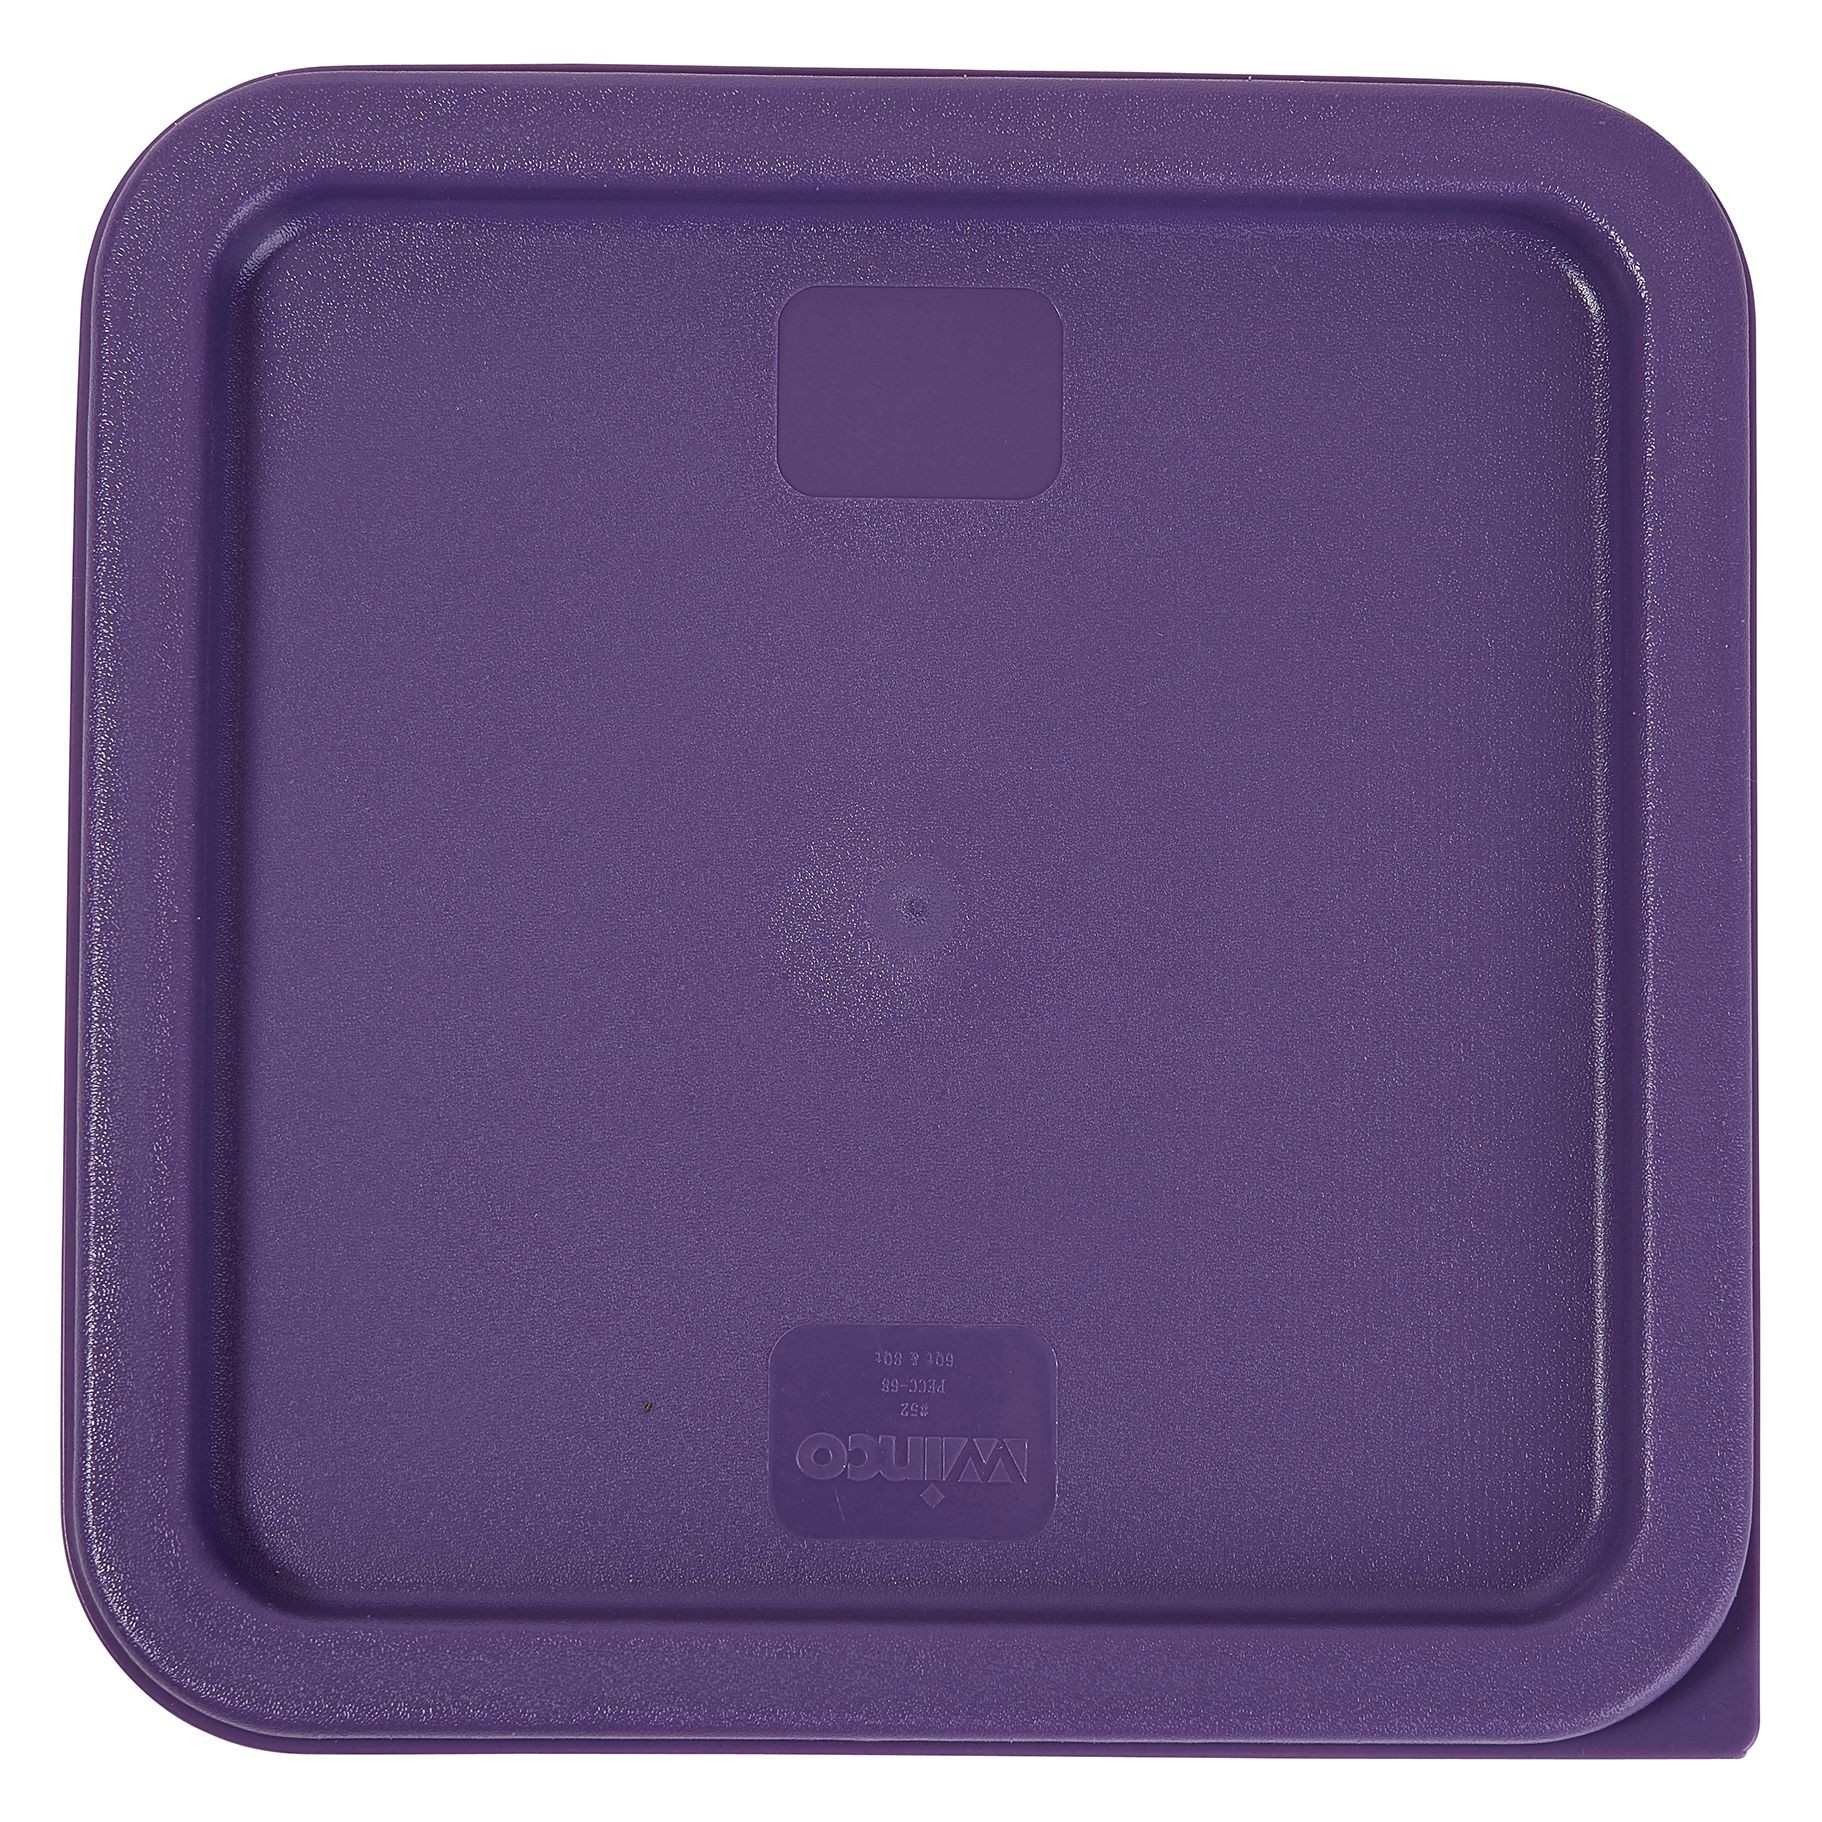 Winco PECC-68P Purple Square Cover for 6 & 8 Qt. Food Containers, Allergen Free